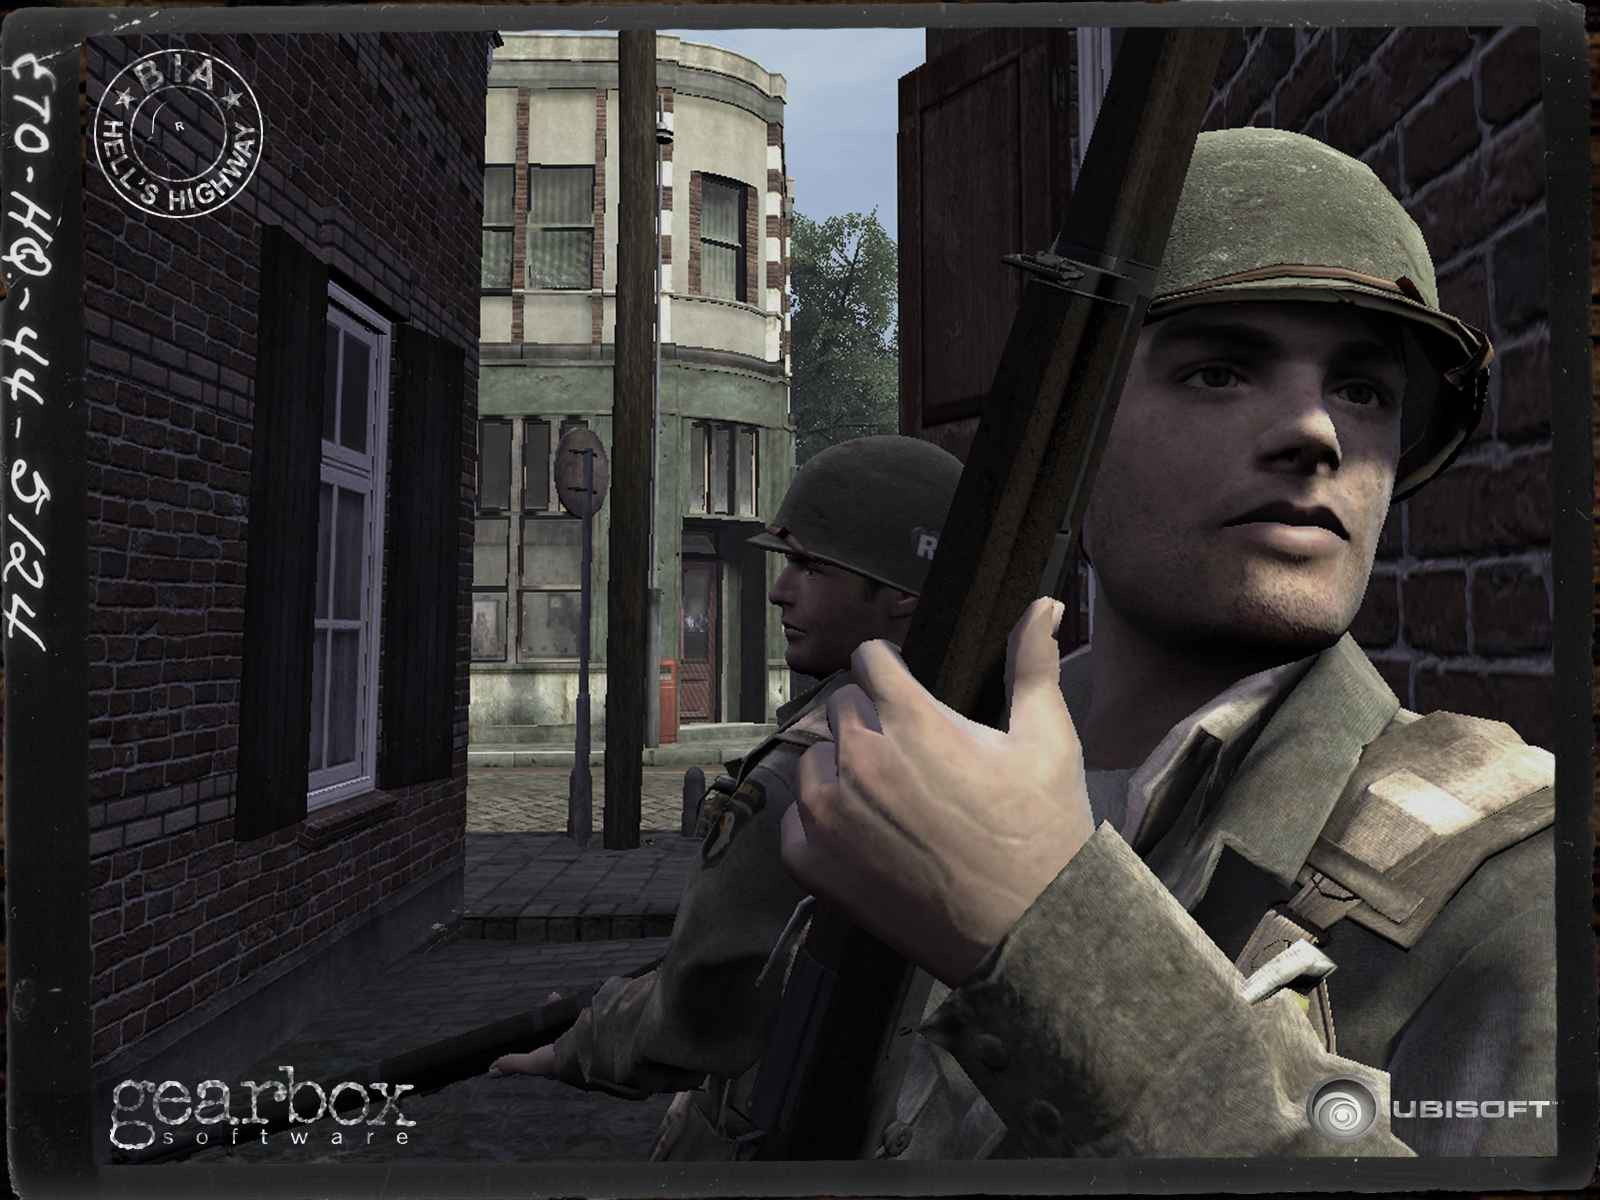 brothers in arms - hell's highway 3 - playstation universe